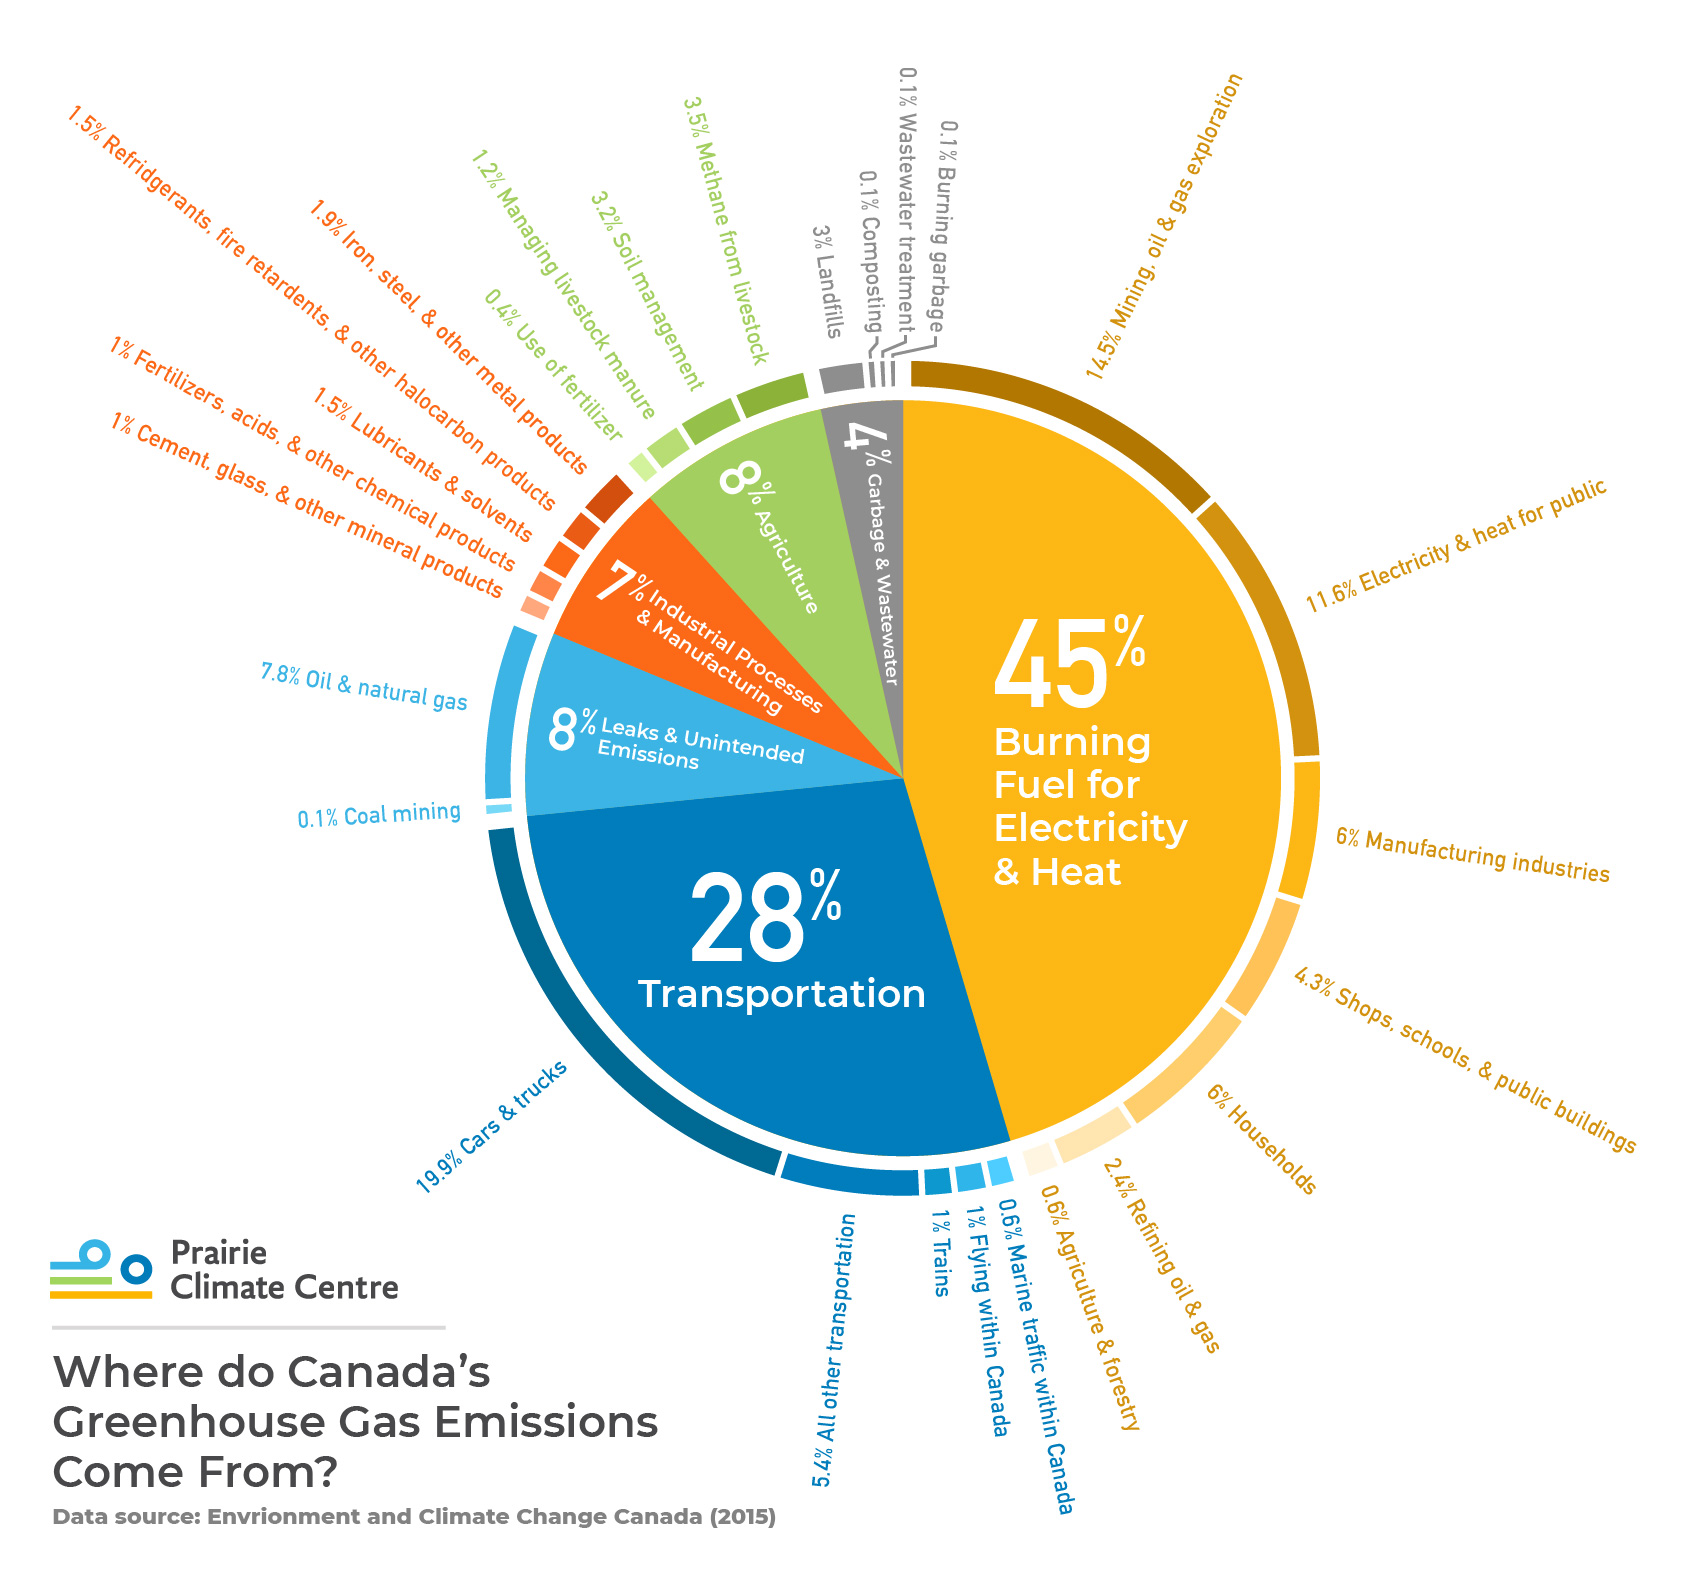 Sources of Greenhouse Gases in Canada